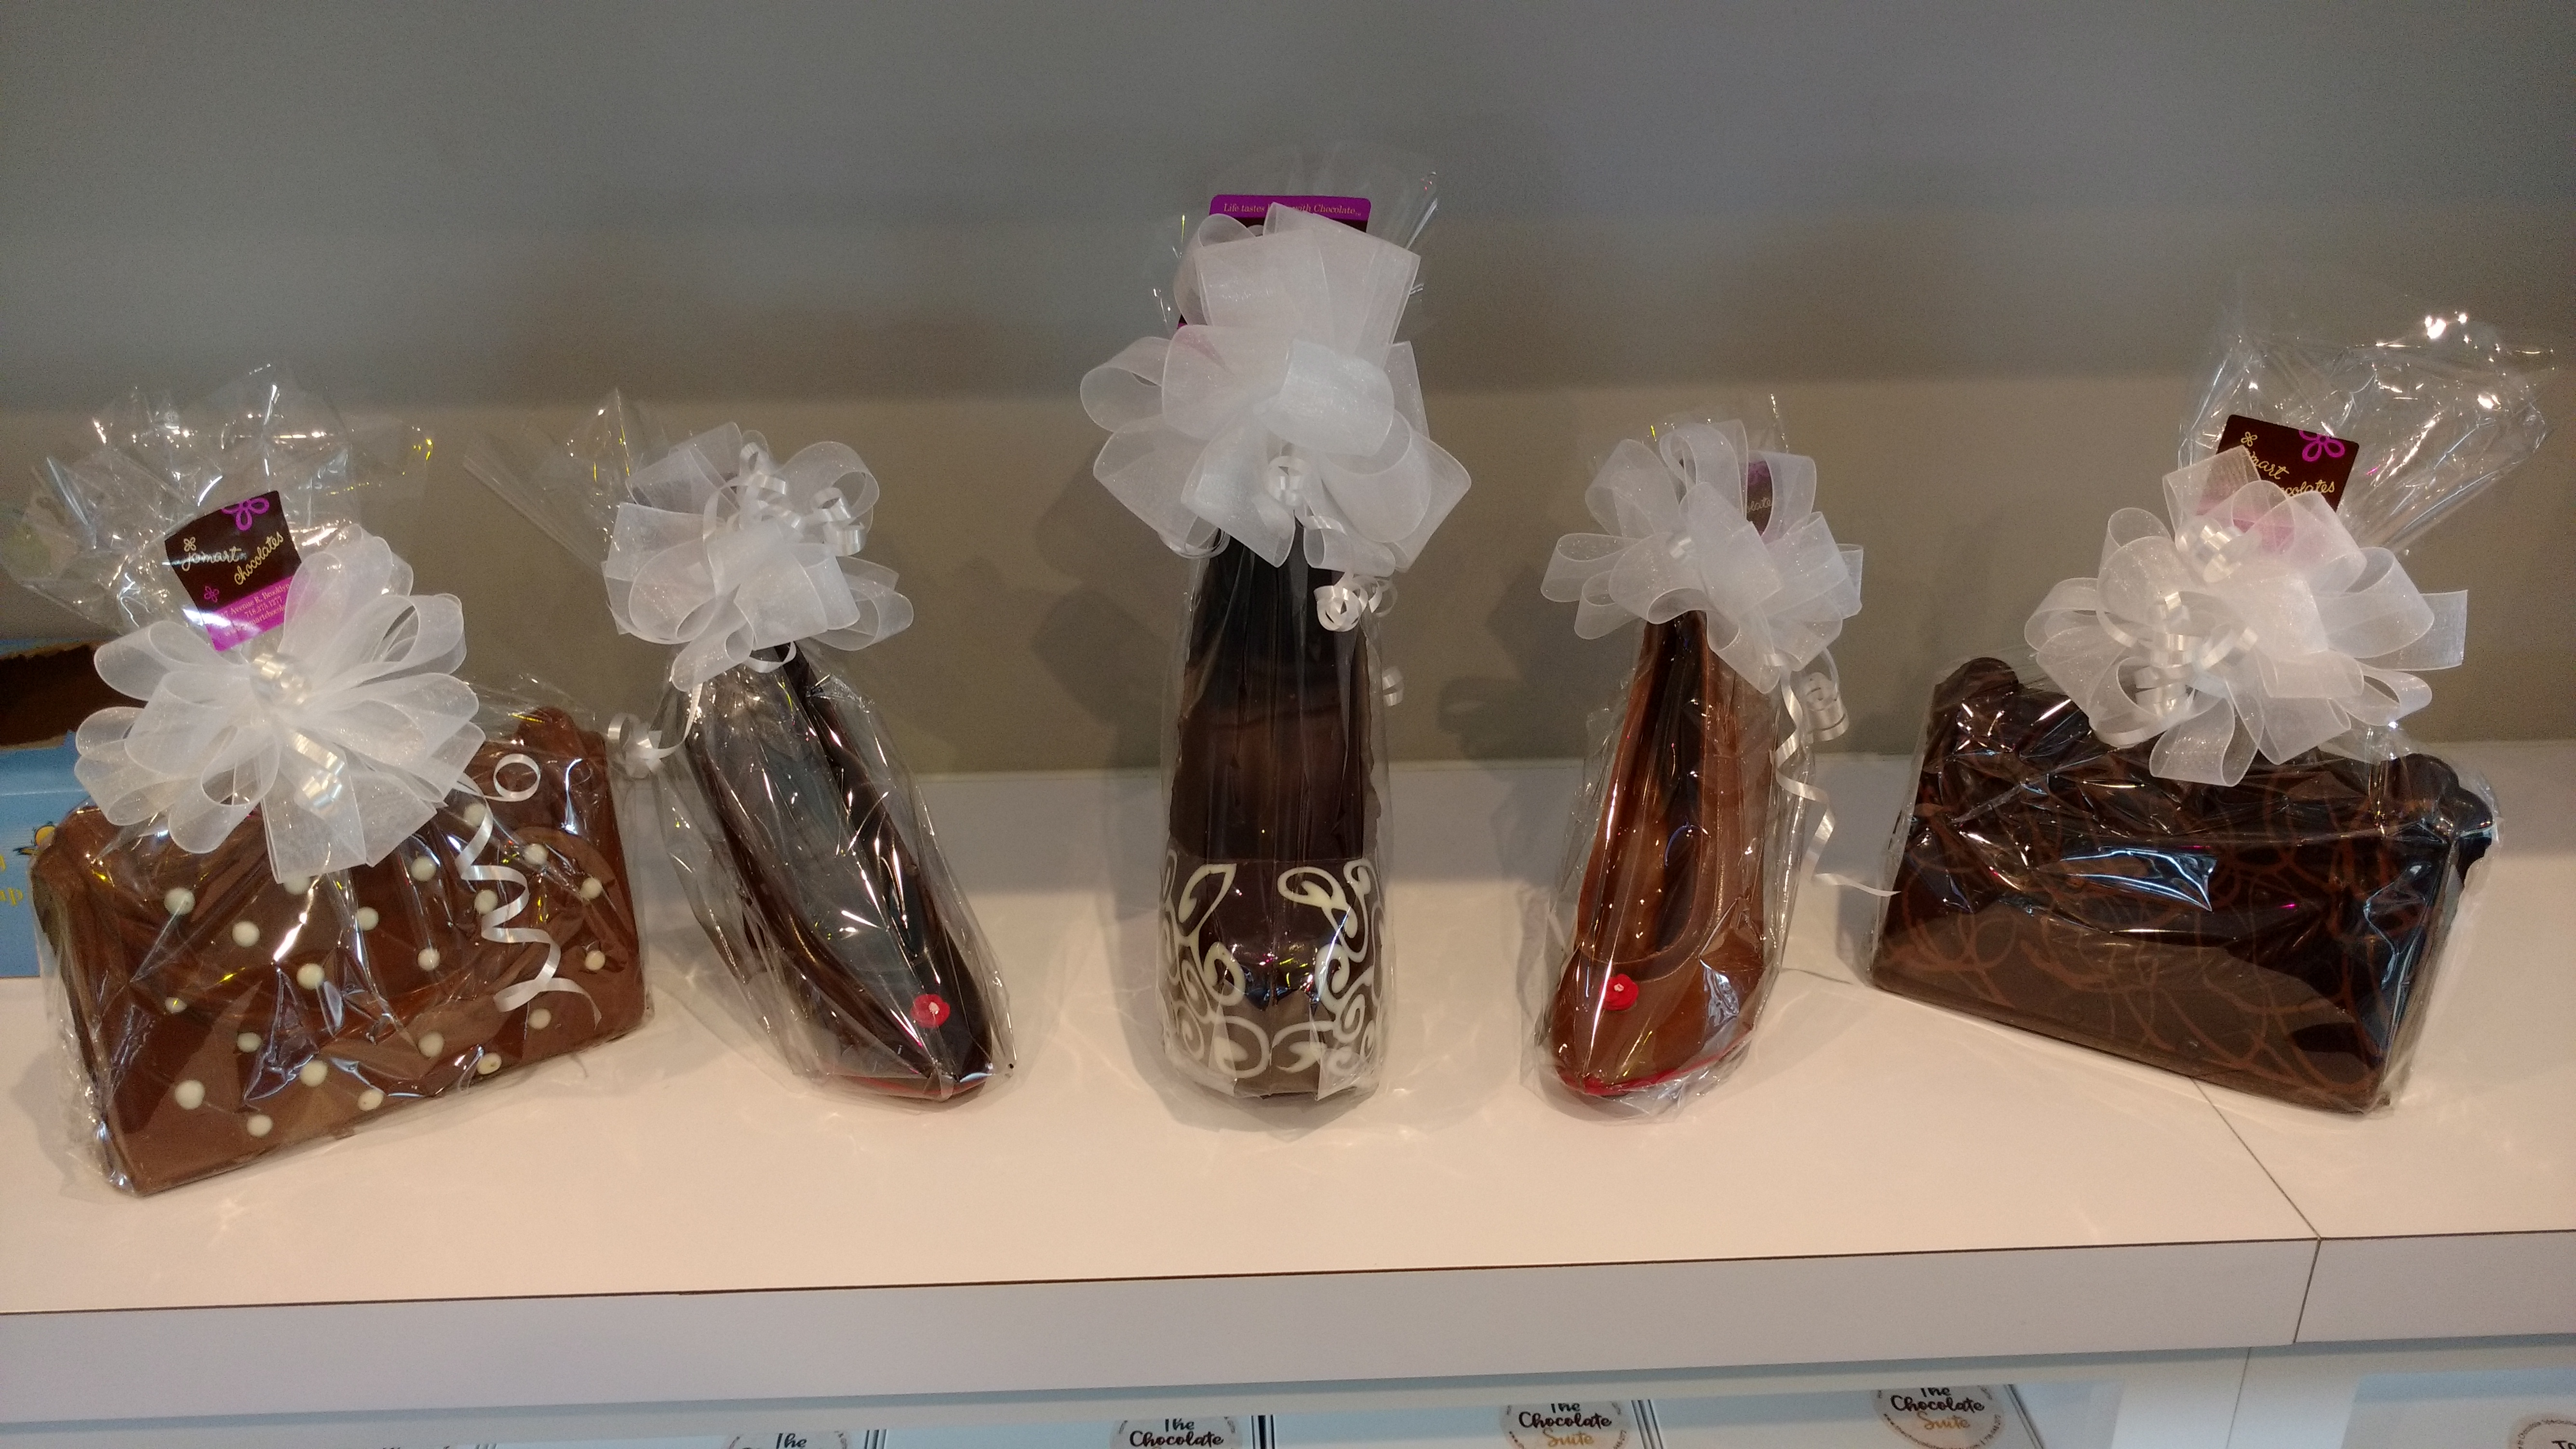 The Chocolate Suite shoes and purse